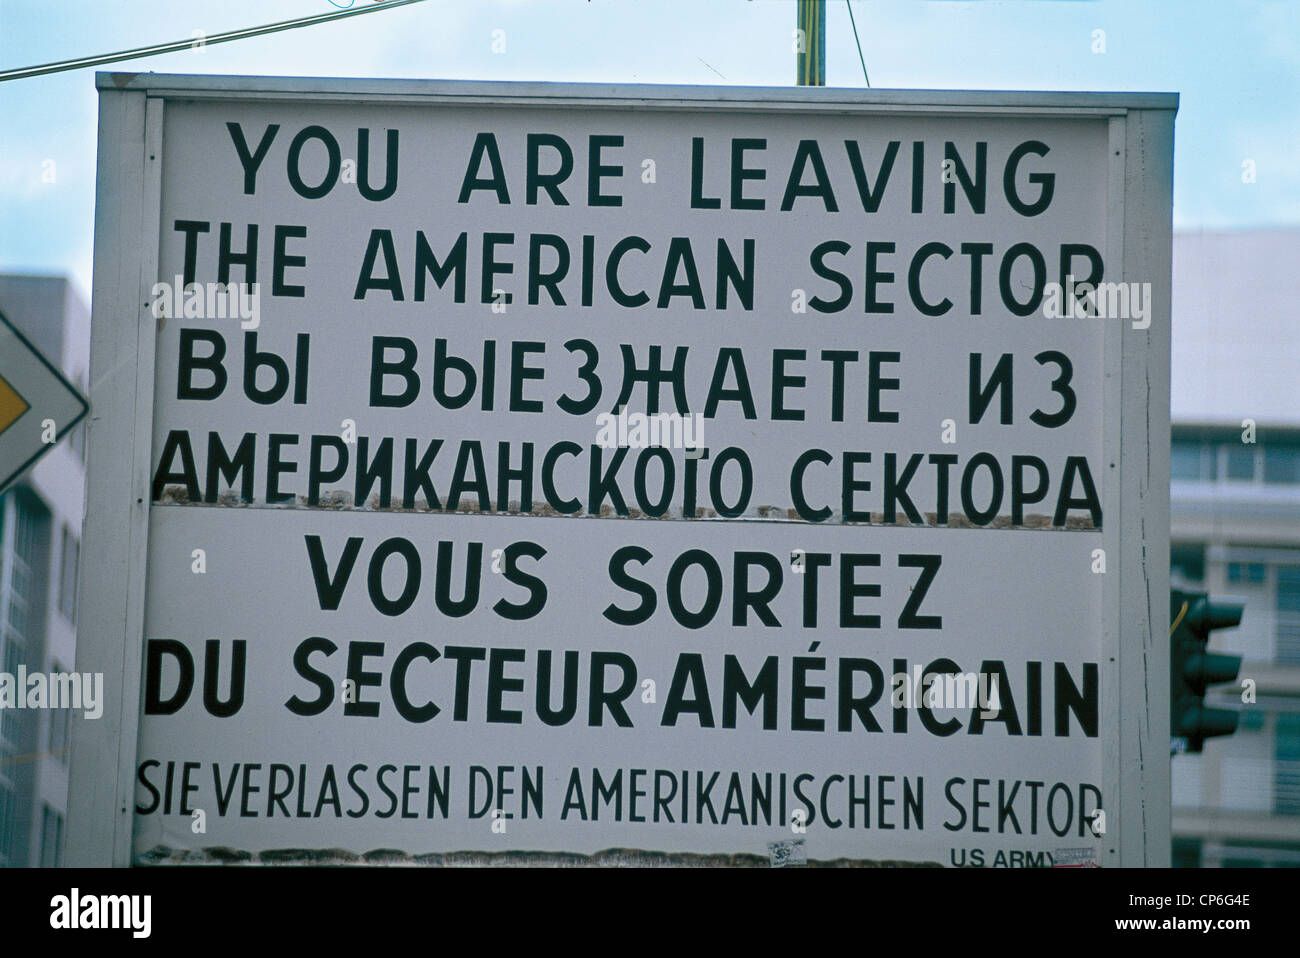 Germany - Berlin. Signalization of the former Checkpoint Charlie in the American sector - Stock Image